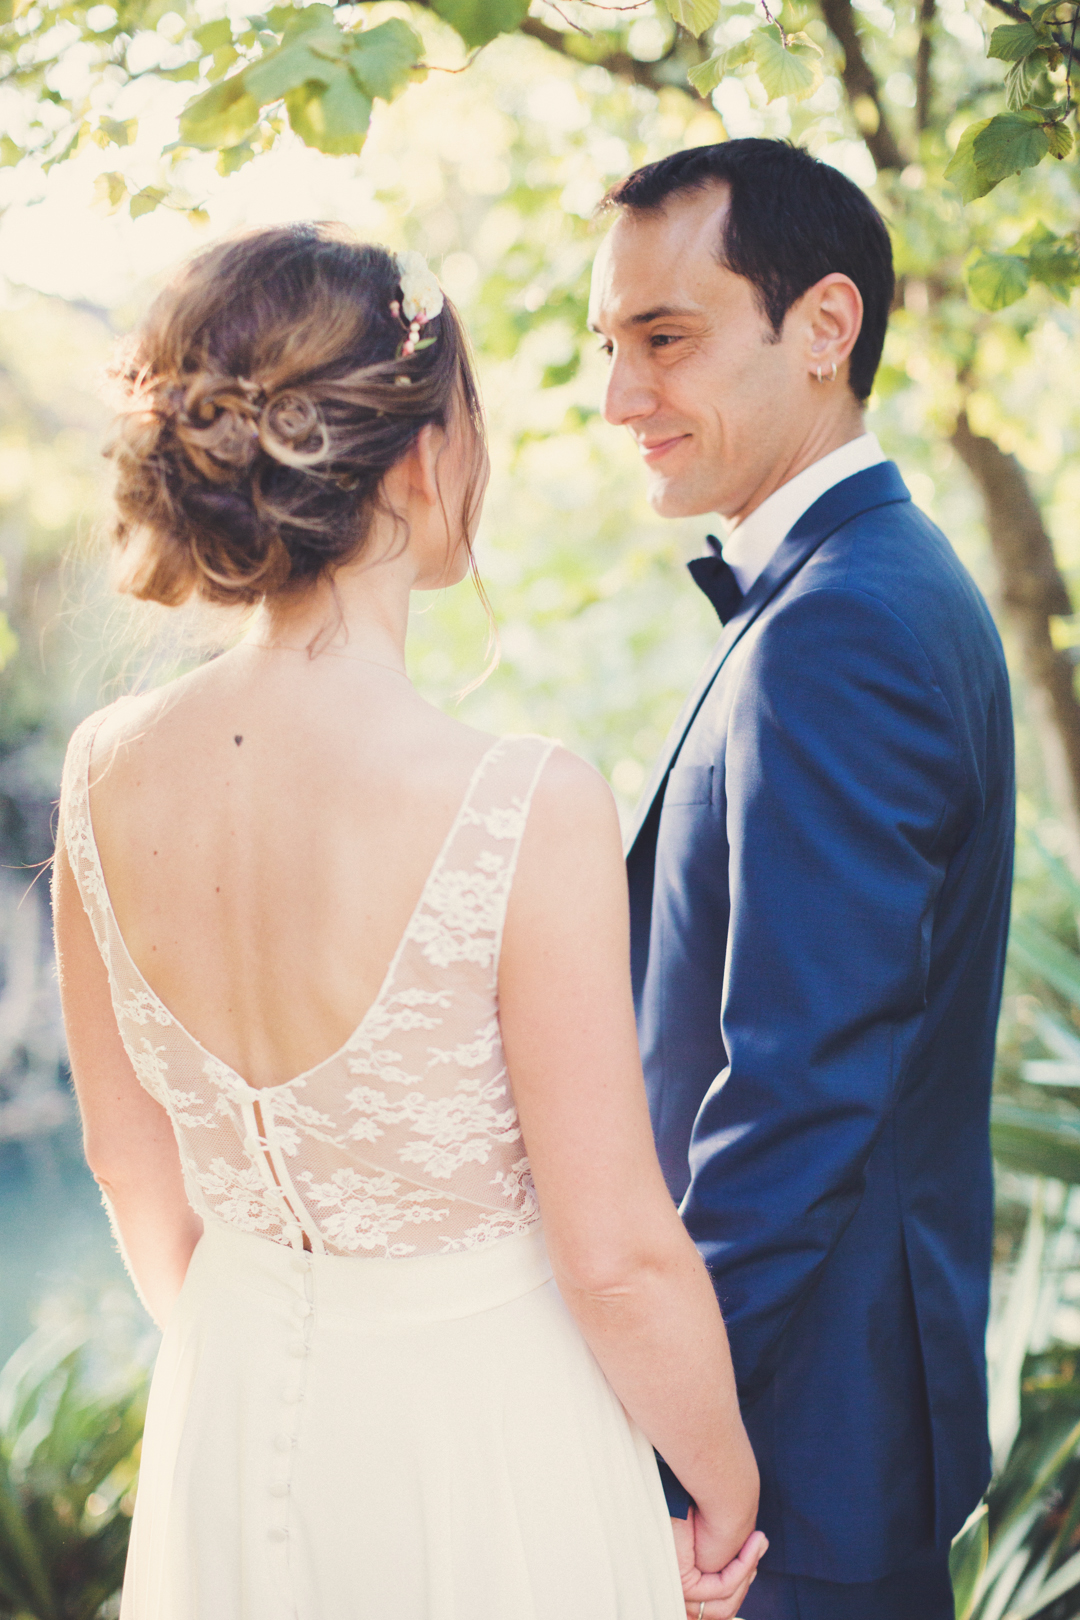 Northern California Wedding Photographer @ Anne-Claire Brun 0066